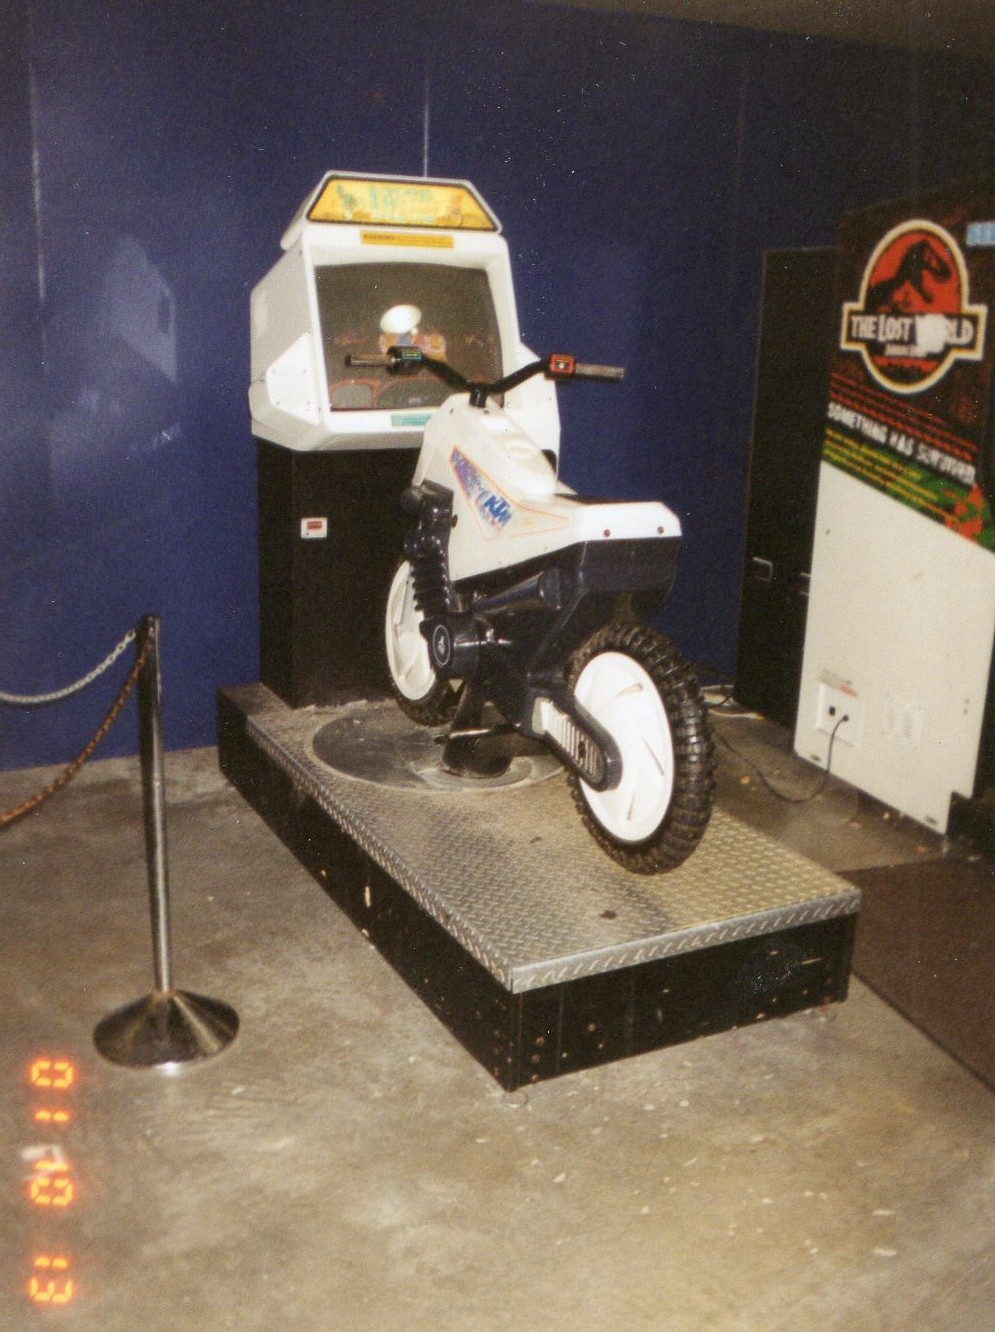 arcade heroes arcade review and history skyquest arcade at the on a 2001 visit to the skylon i found this full sized atari s moto frenzy which is also no longer there